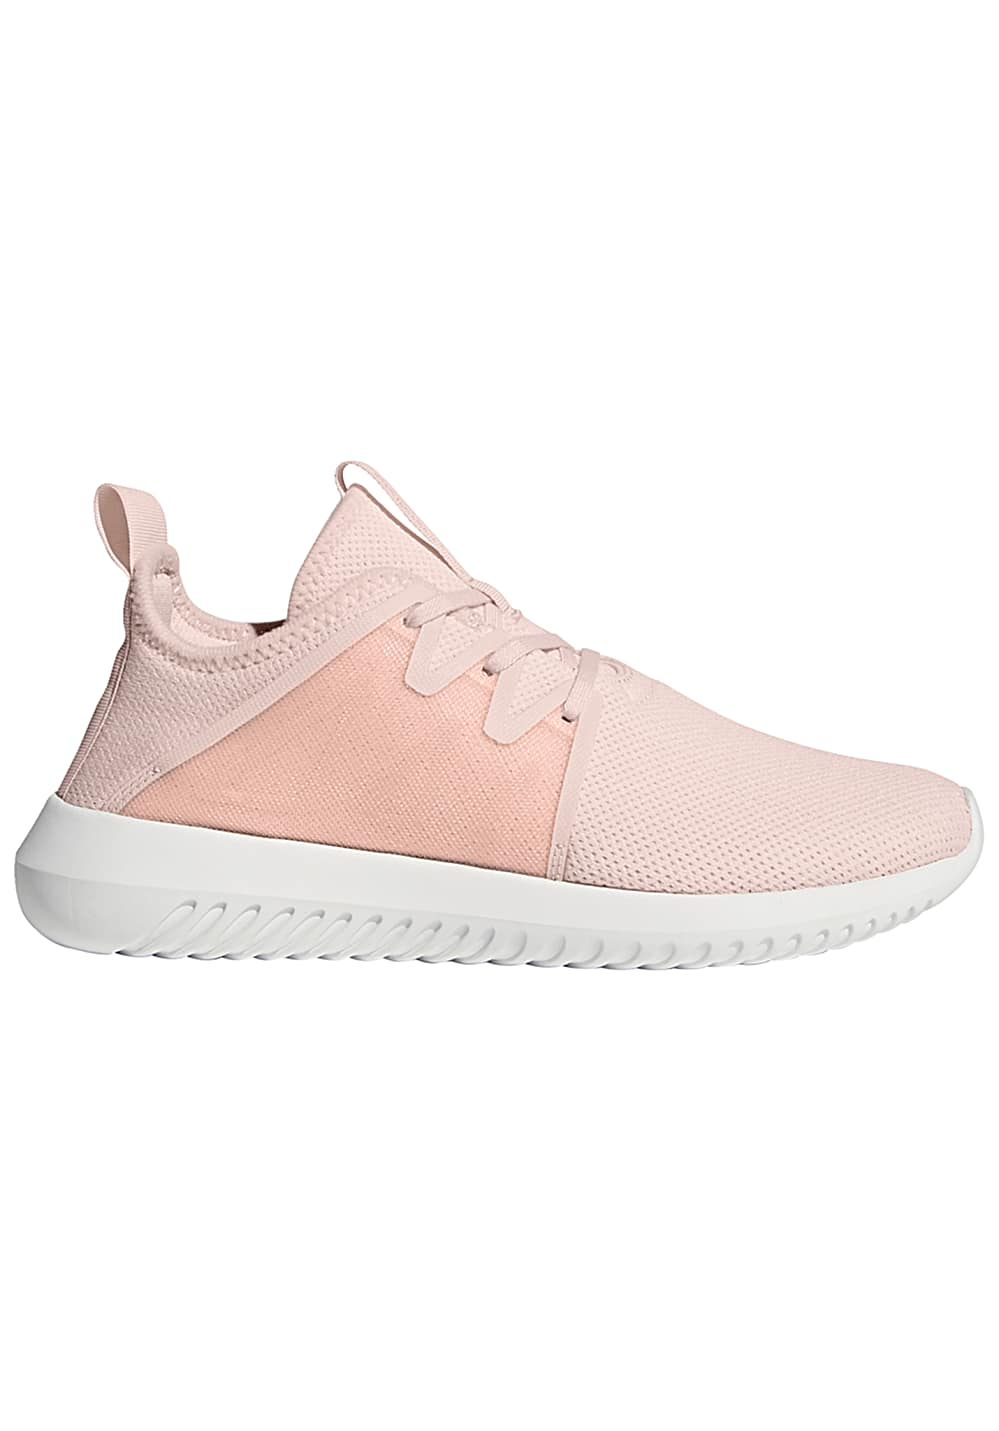 timeless design ccc30 15442 ADIDAS ORIGINALS Tubular Viral2 - Sneakers for Women - Pink